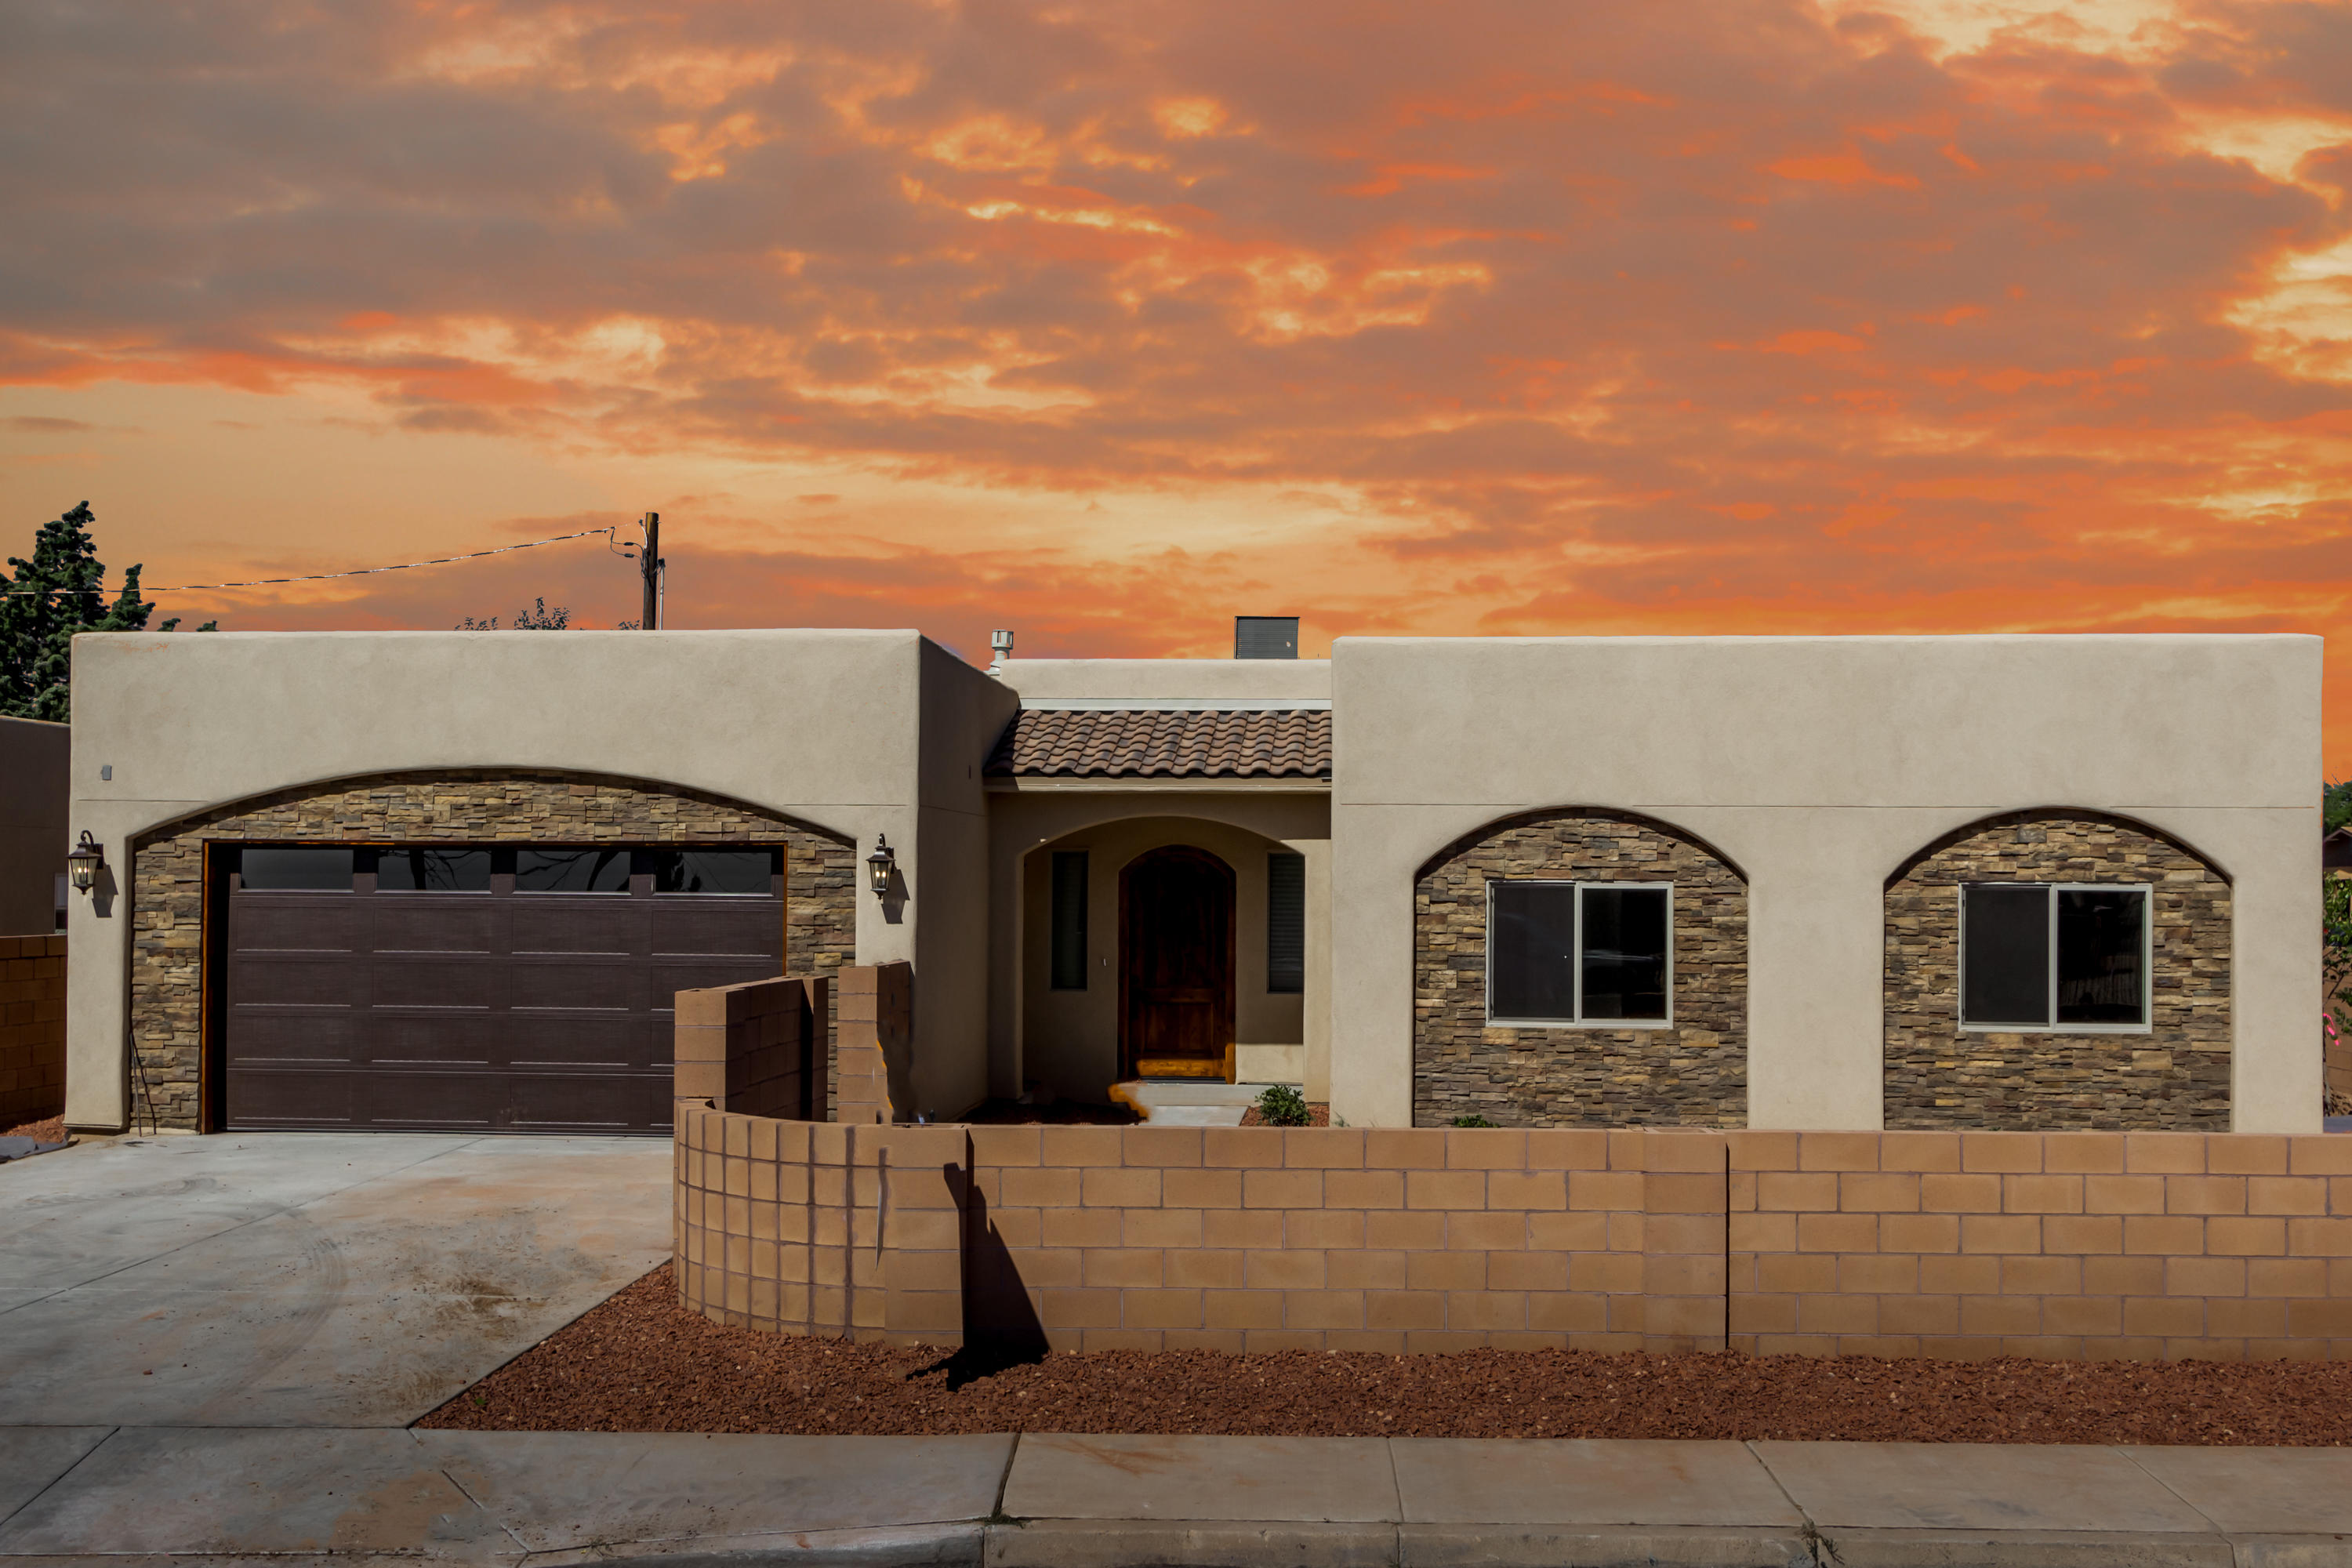 Beautiful single-story custom new build home with top notch finishes. This home features an open floor plan with 10' ceilings, custom knotty pine doors, gas kiva fireplace, and 2 master bedrooms! Kitchen boasts custom hickory cabinets, granite countertops, SS appliances, & breakfast bar. Tile floors throughout with custom tile work in the bathrooms. Laundry room has custom cabinets, granite countertops & folding area. High efficiency refrigerated air to keep you cool during the summer. Lovely private covered patio leading to the backyard. This well appointed home with split master floor plan is sure to impress. Schedule your showing today. *Photos and floor plans are of proposed construction, and may differ slightly.